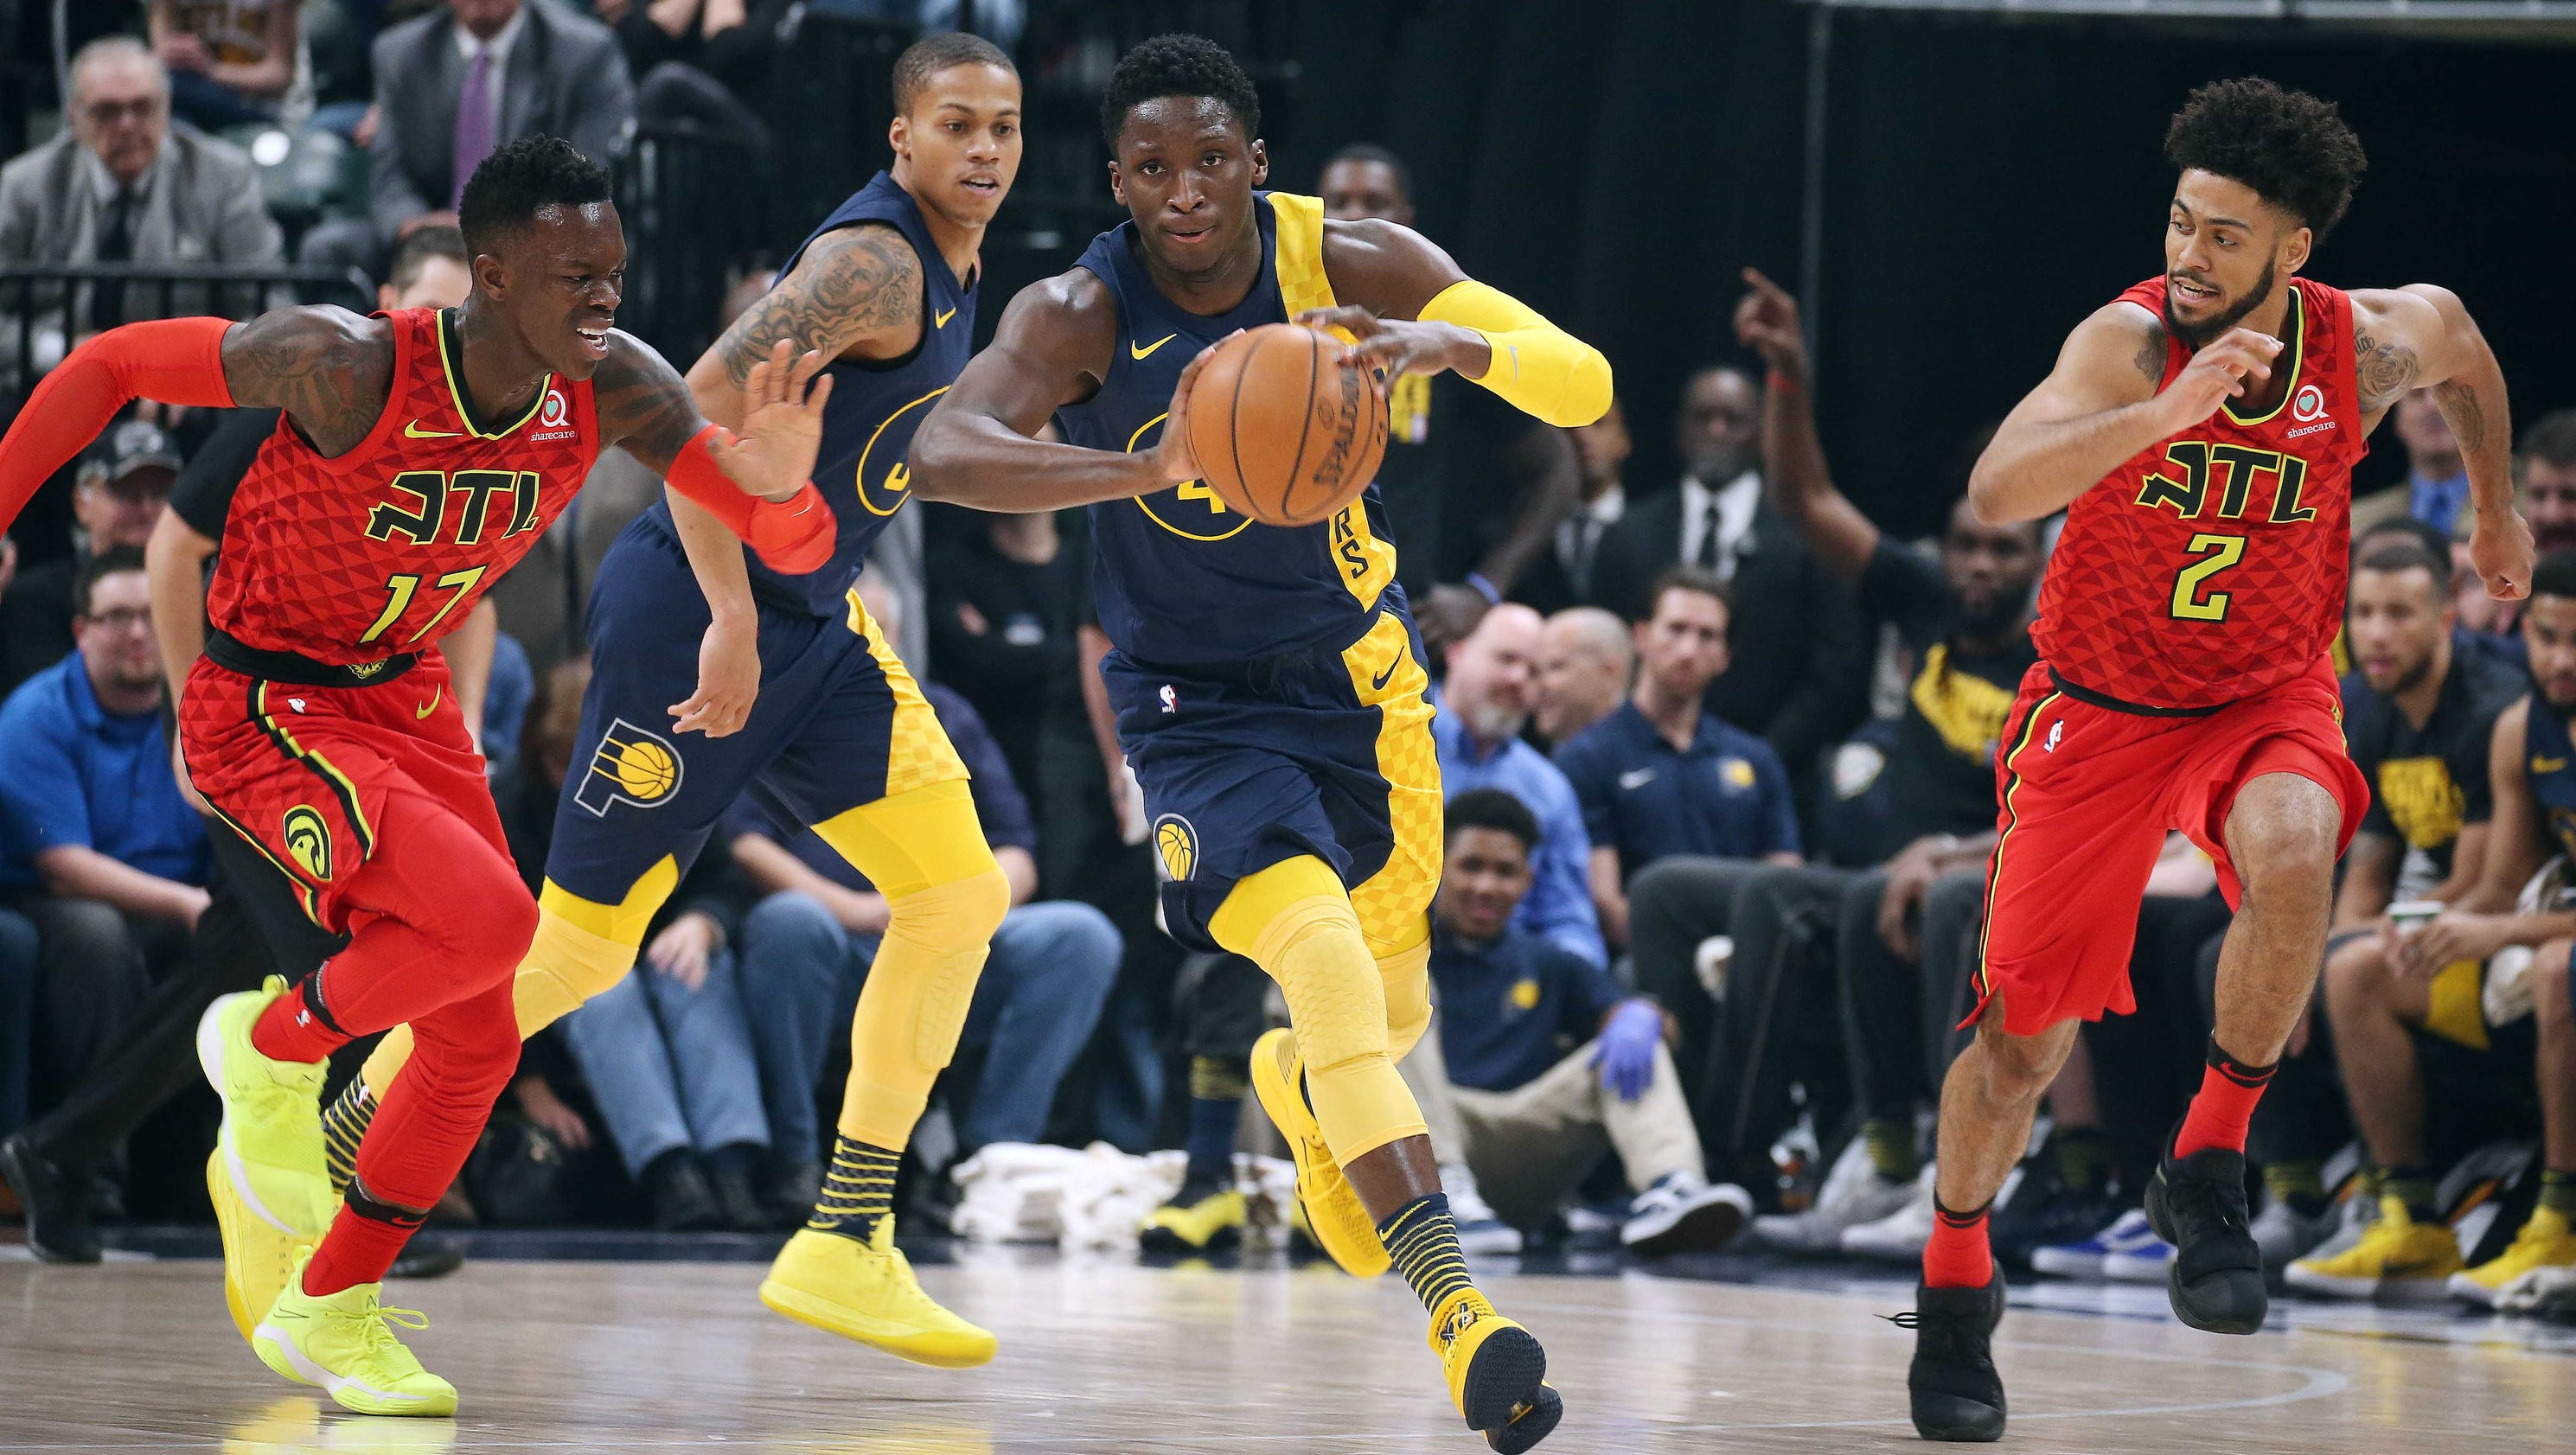 636571499284536240-oladipo-steal2